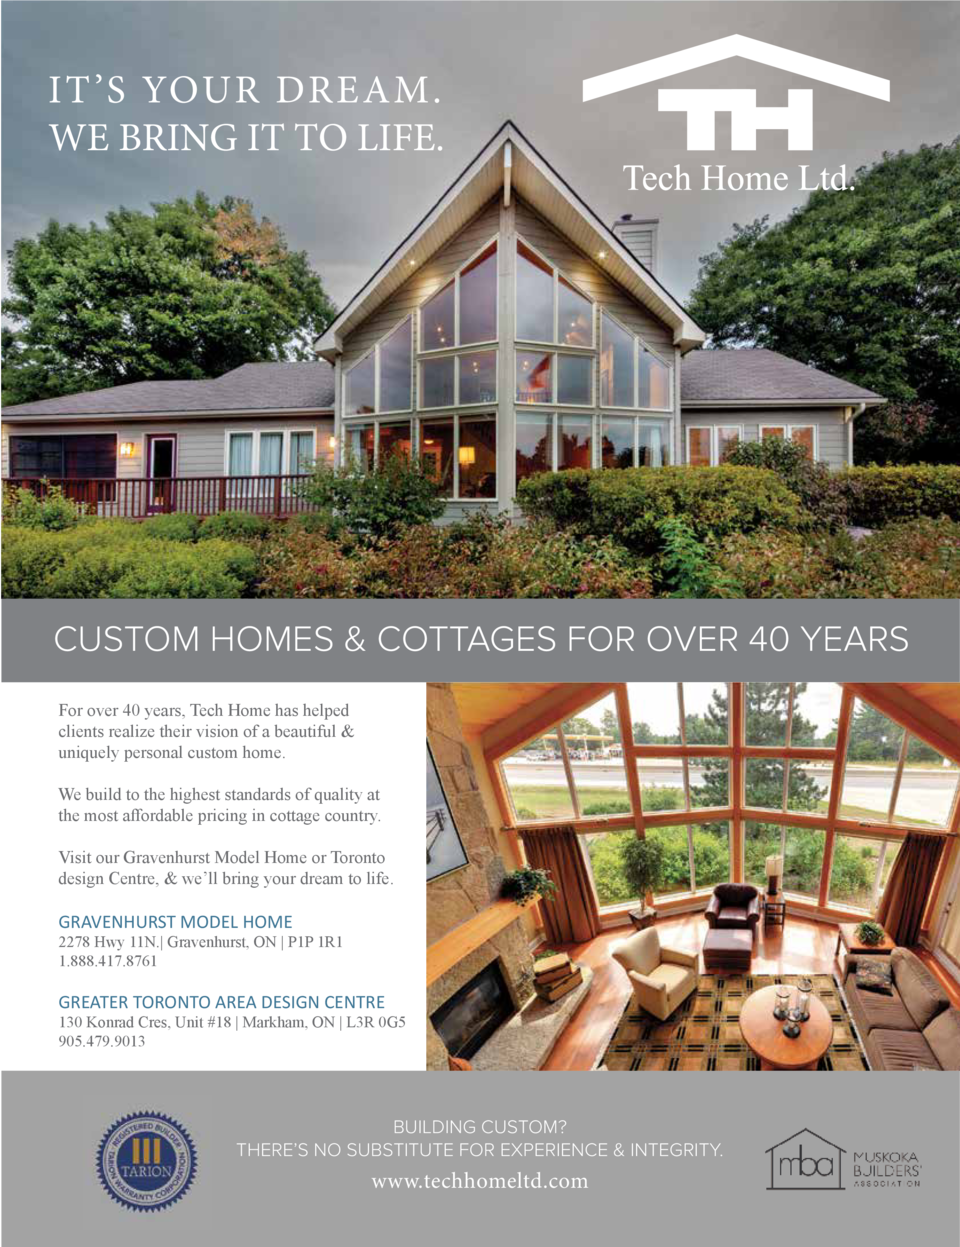 IT    S YOUR DREAM. WE BRING IT TO LIFE.  CUSTOM HOMES   COTTAGES FOR OVER 40 YEARS For over 40 years, Tech Home has helpe...